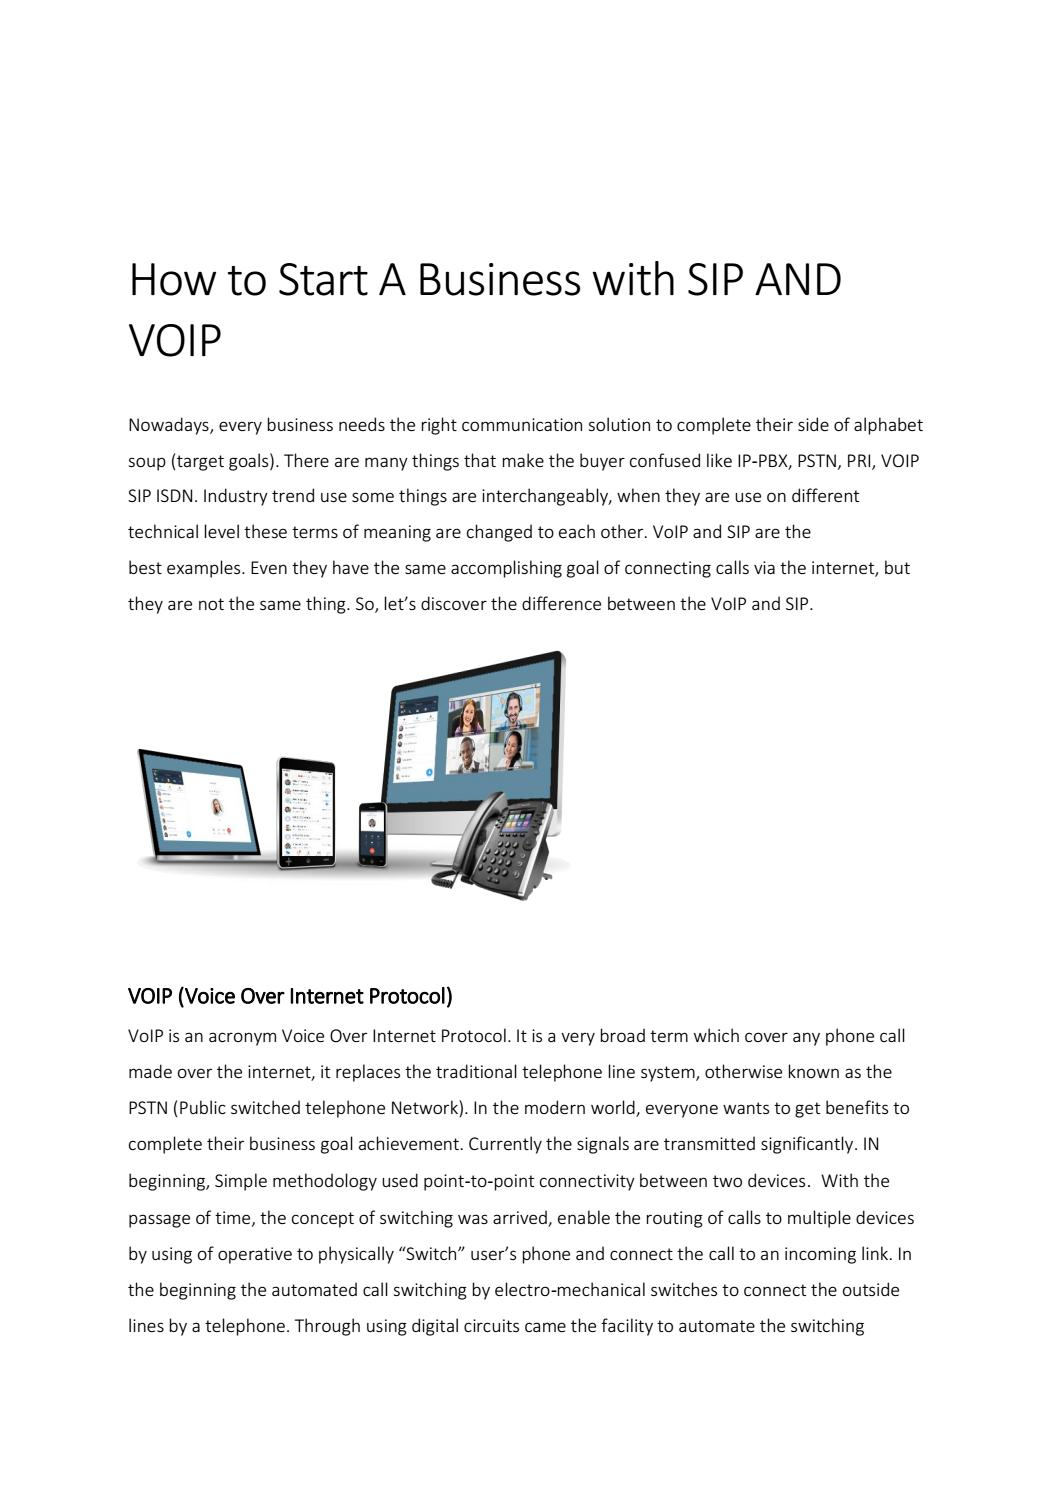 how to start a small a business with VoIP and sip by